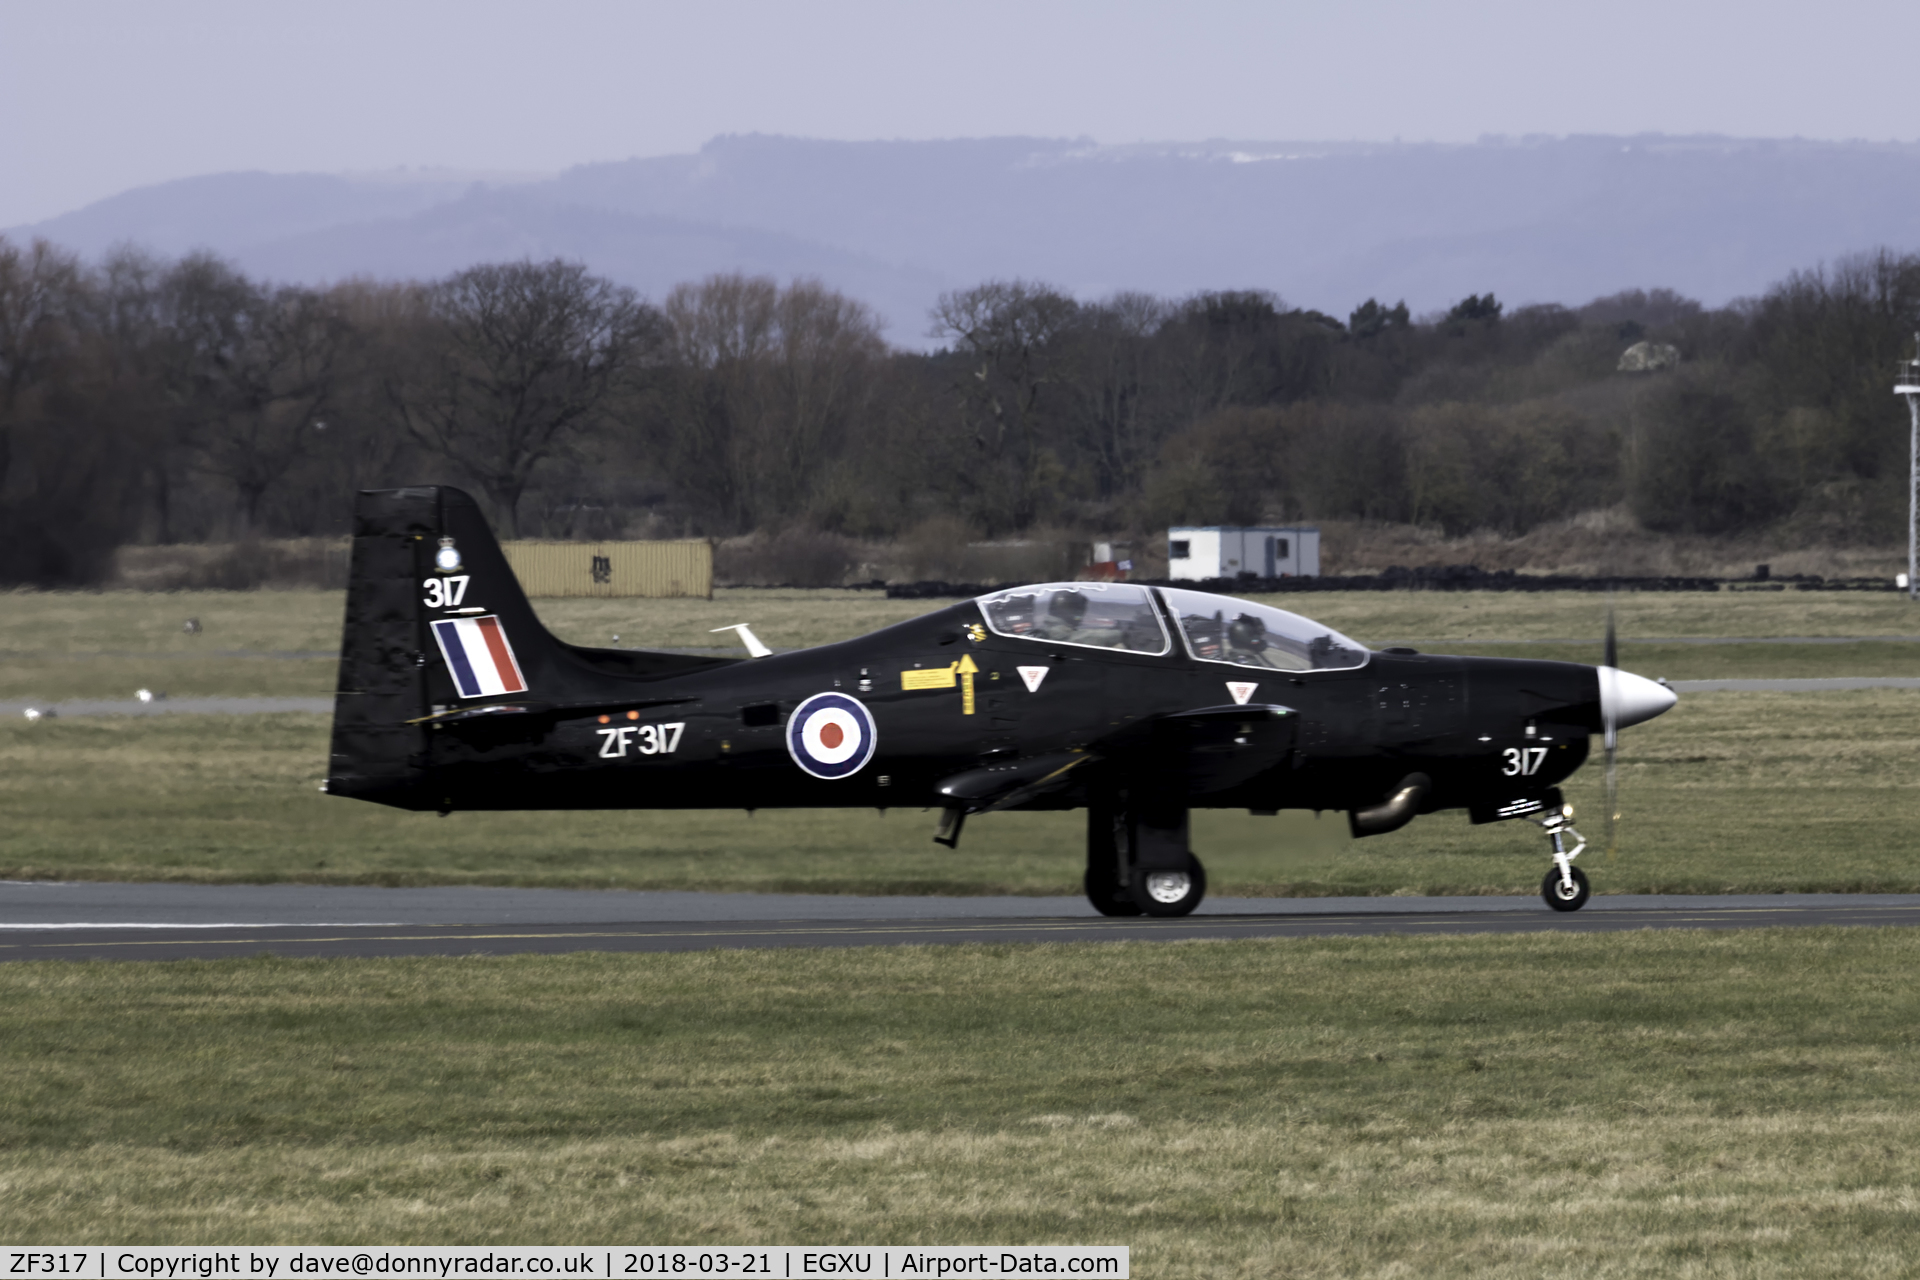 ZF317, Short S-312 Tucano T1 C/N S098/T69, ZF317 returning to the pan at Linton-on-Ouse